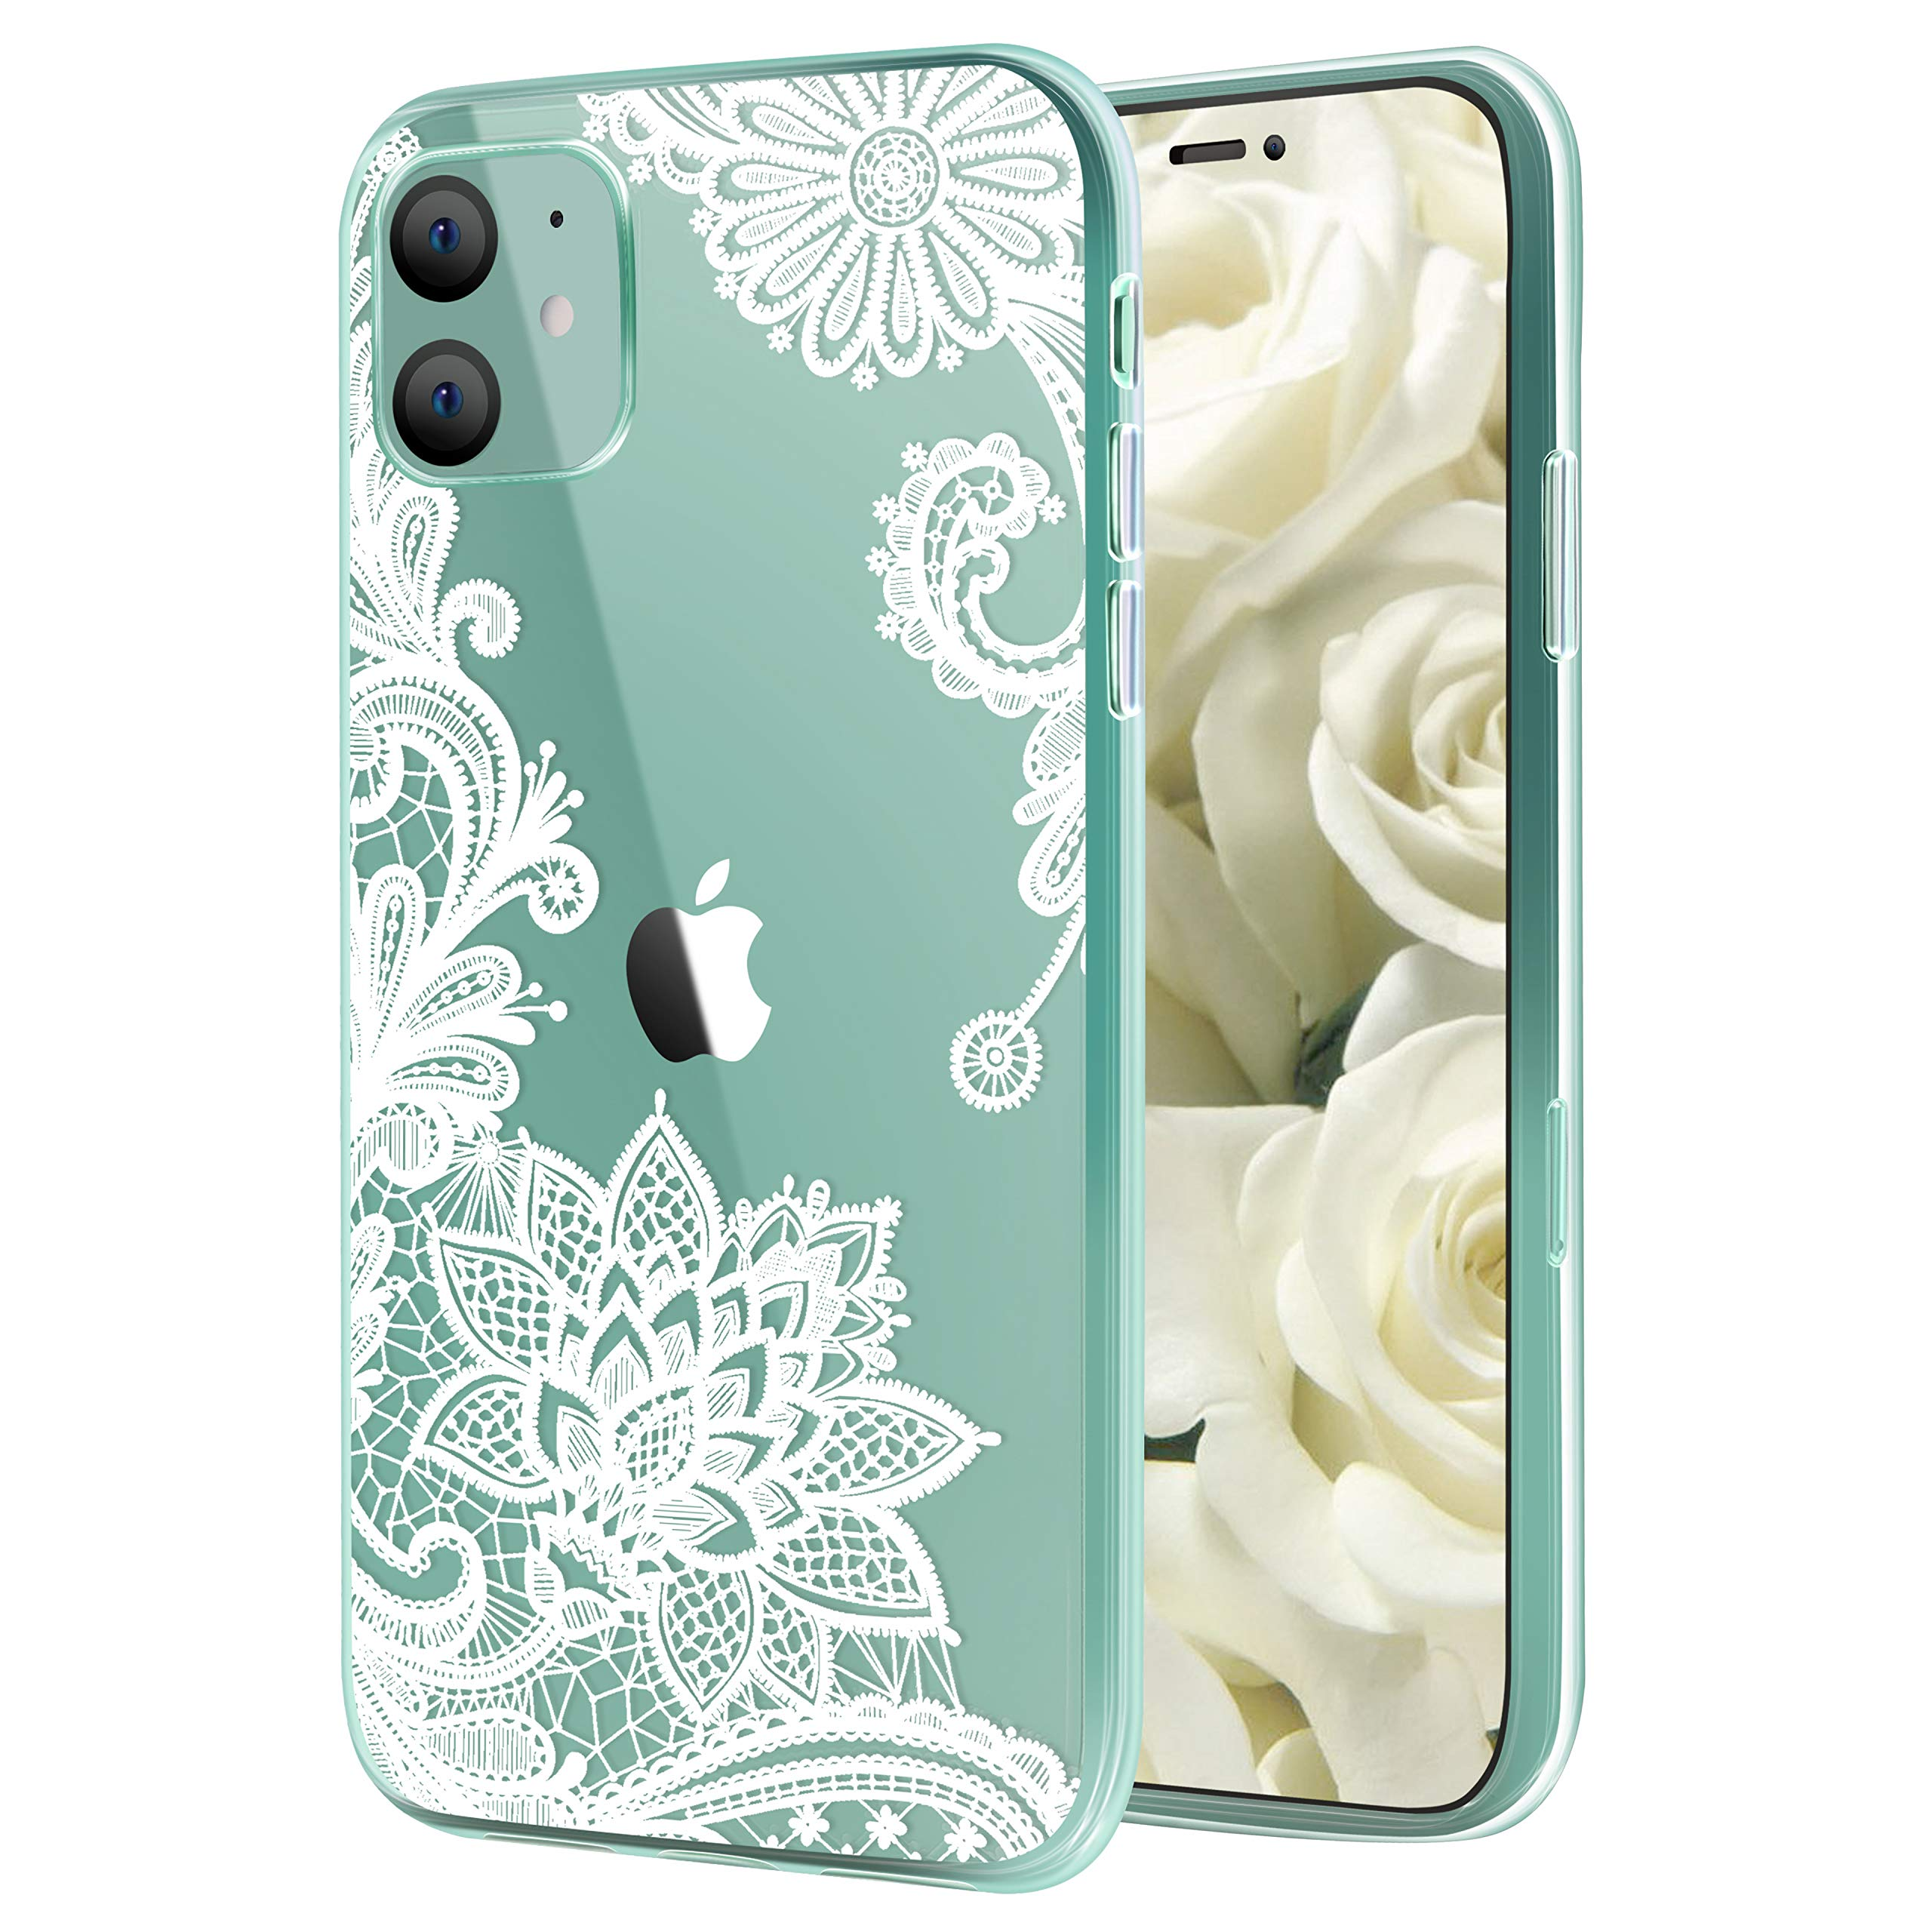 Savourio iPhone 11 Case, HD Clear Ultra Slim Fit Soft TPU Protective Clear Case Shock-Absorption Anti-Scratch Compatible Cover Cases for iPhone 11 5.9 inch [2019] [Lace White]